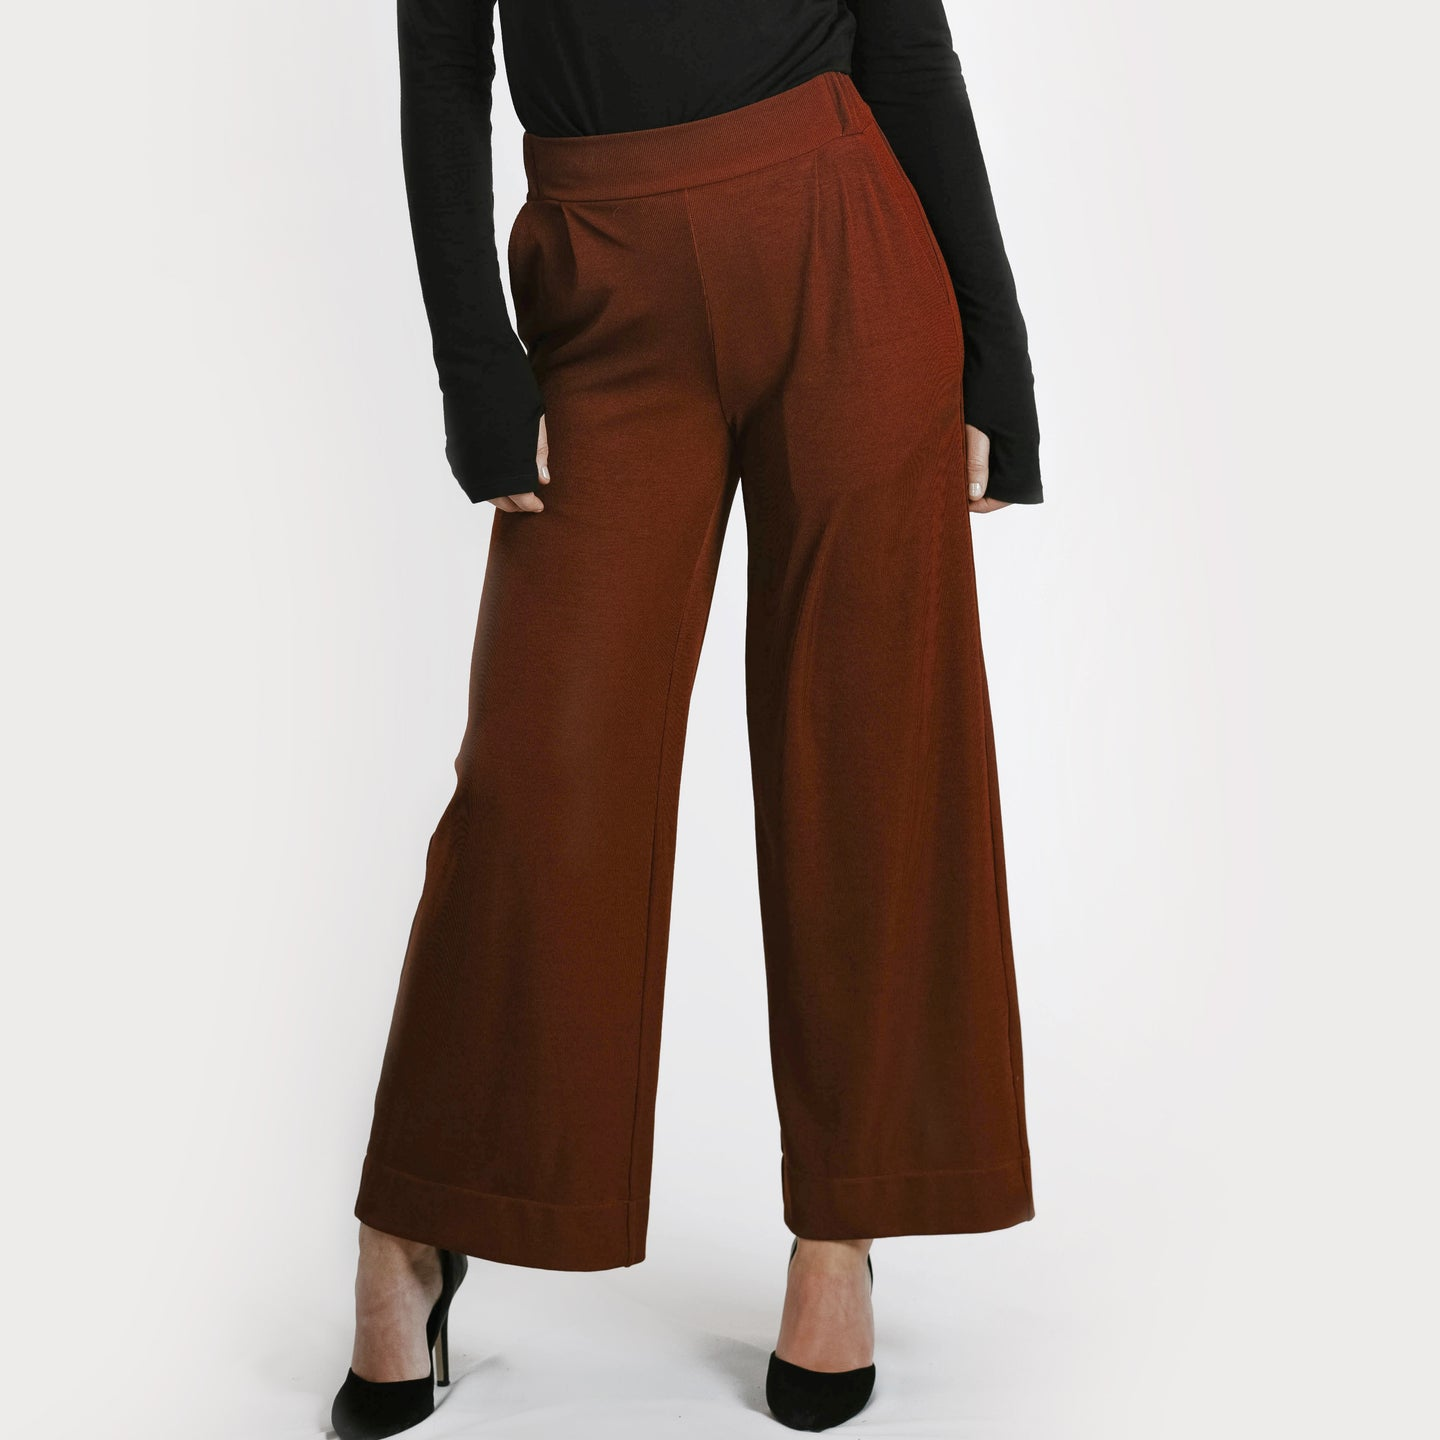 Widelegged pant - rusty red